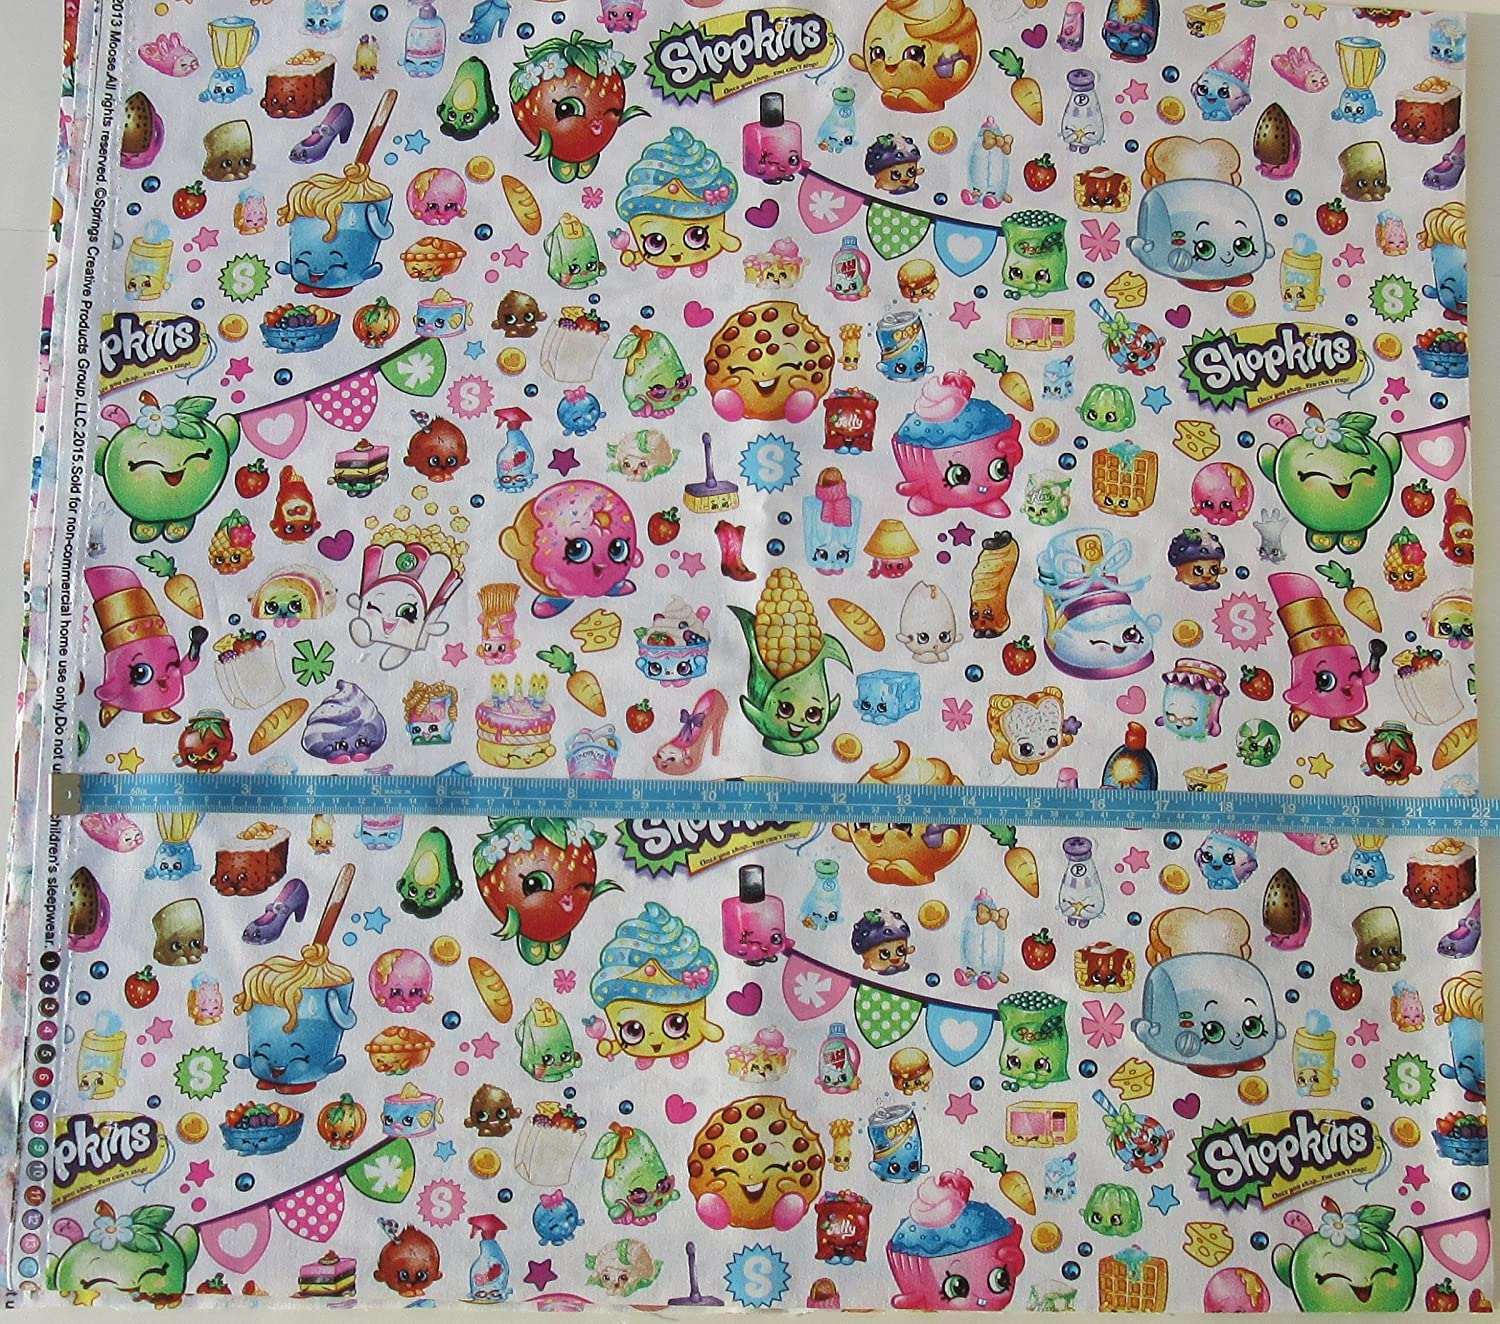 Shopkins - CP60447 Packed Shopkins Party - Cotton Fabric - White Background - 44 Inches Wide - Sold by the Yard